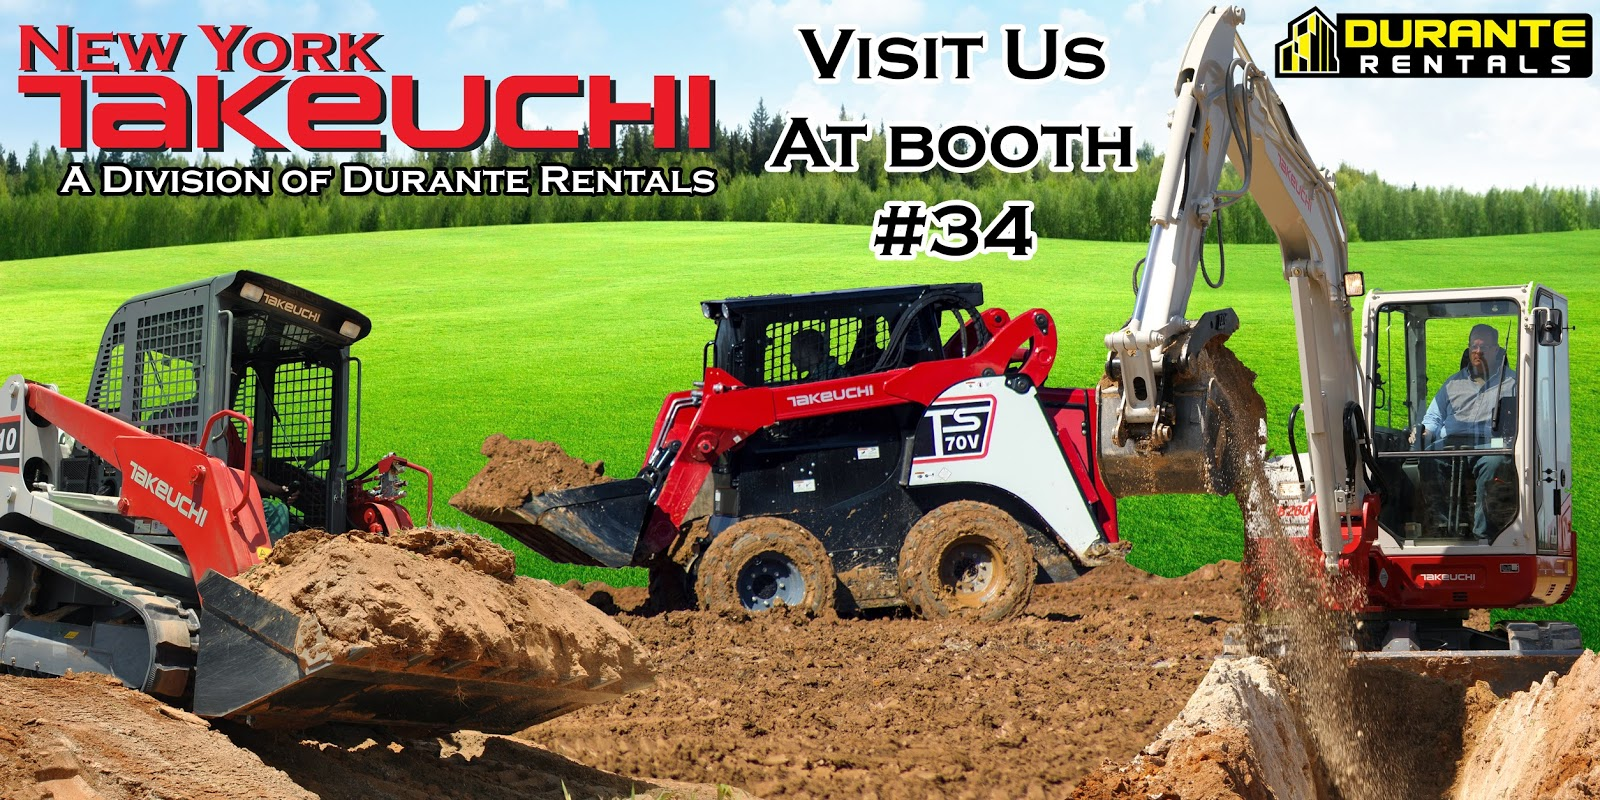 Durante Rentals and NY Takeuchi at NYSTLA tradeshow